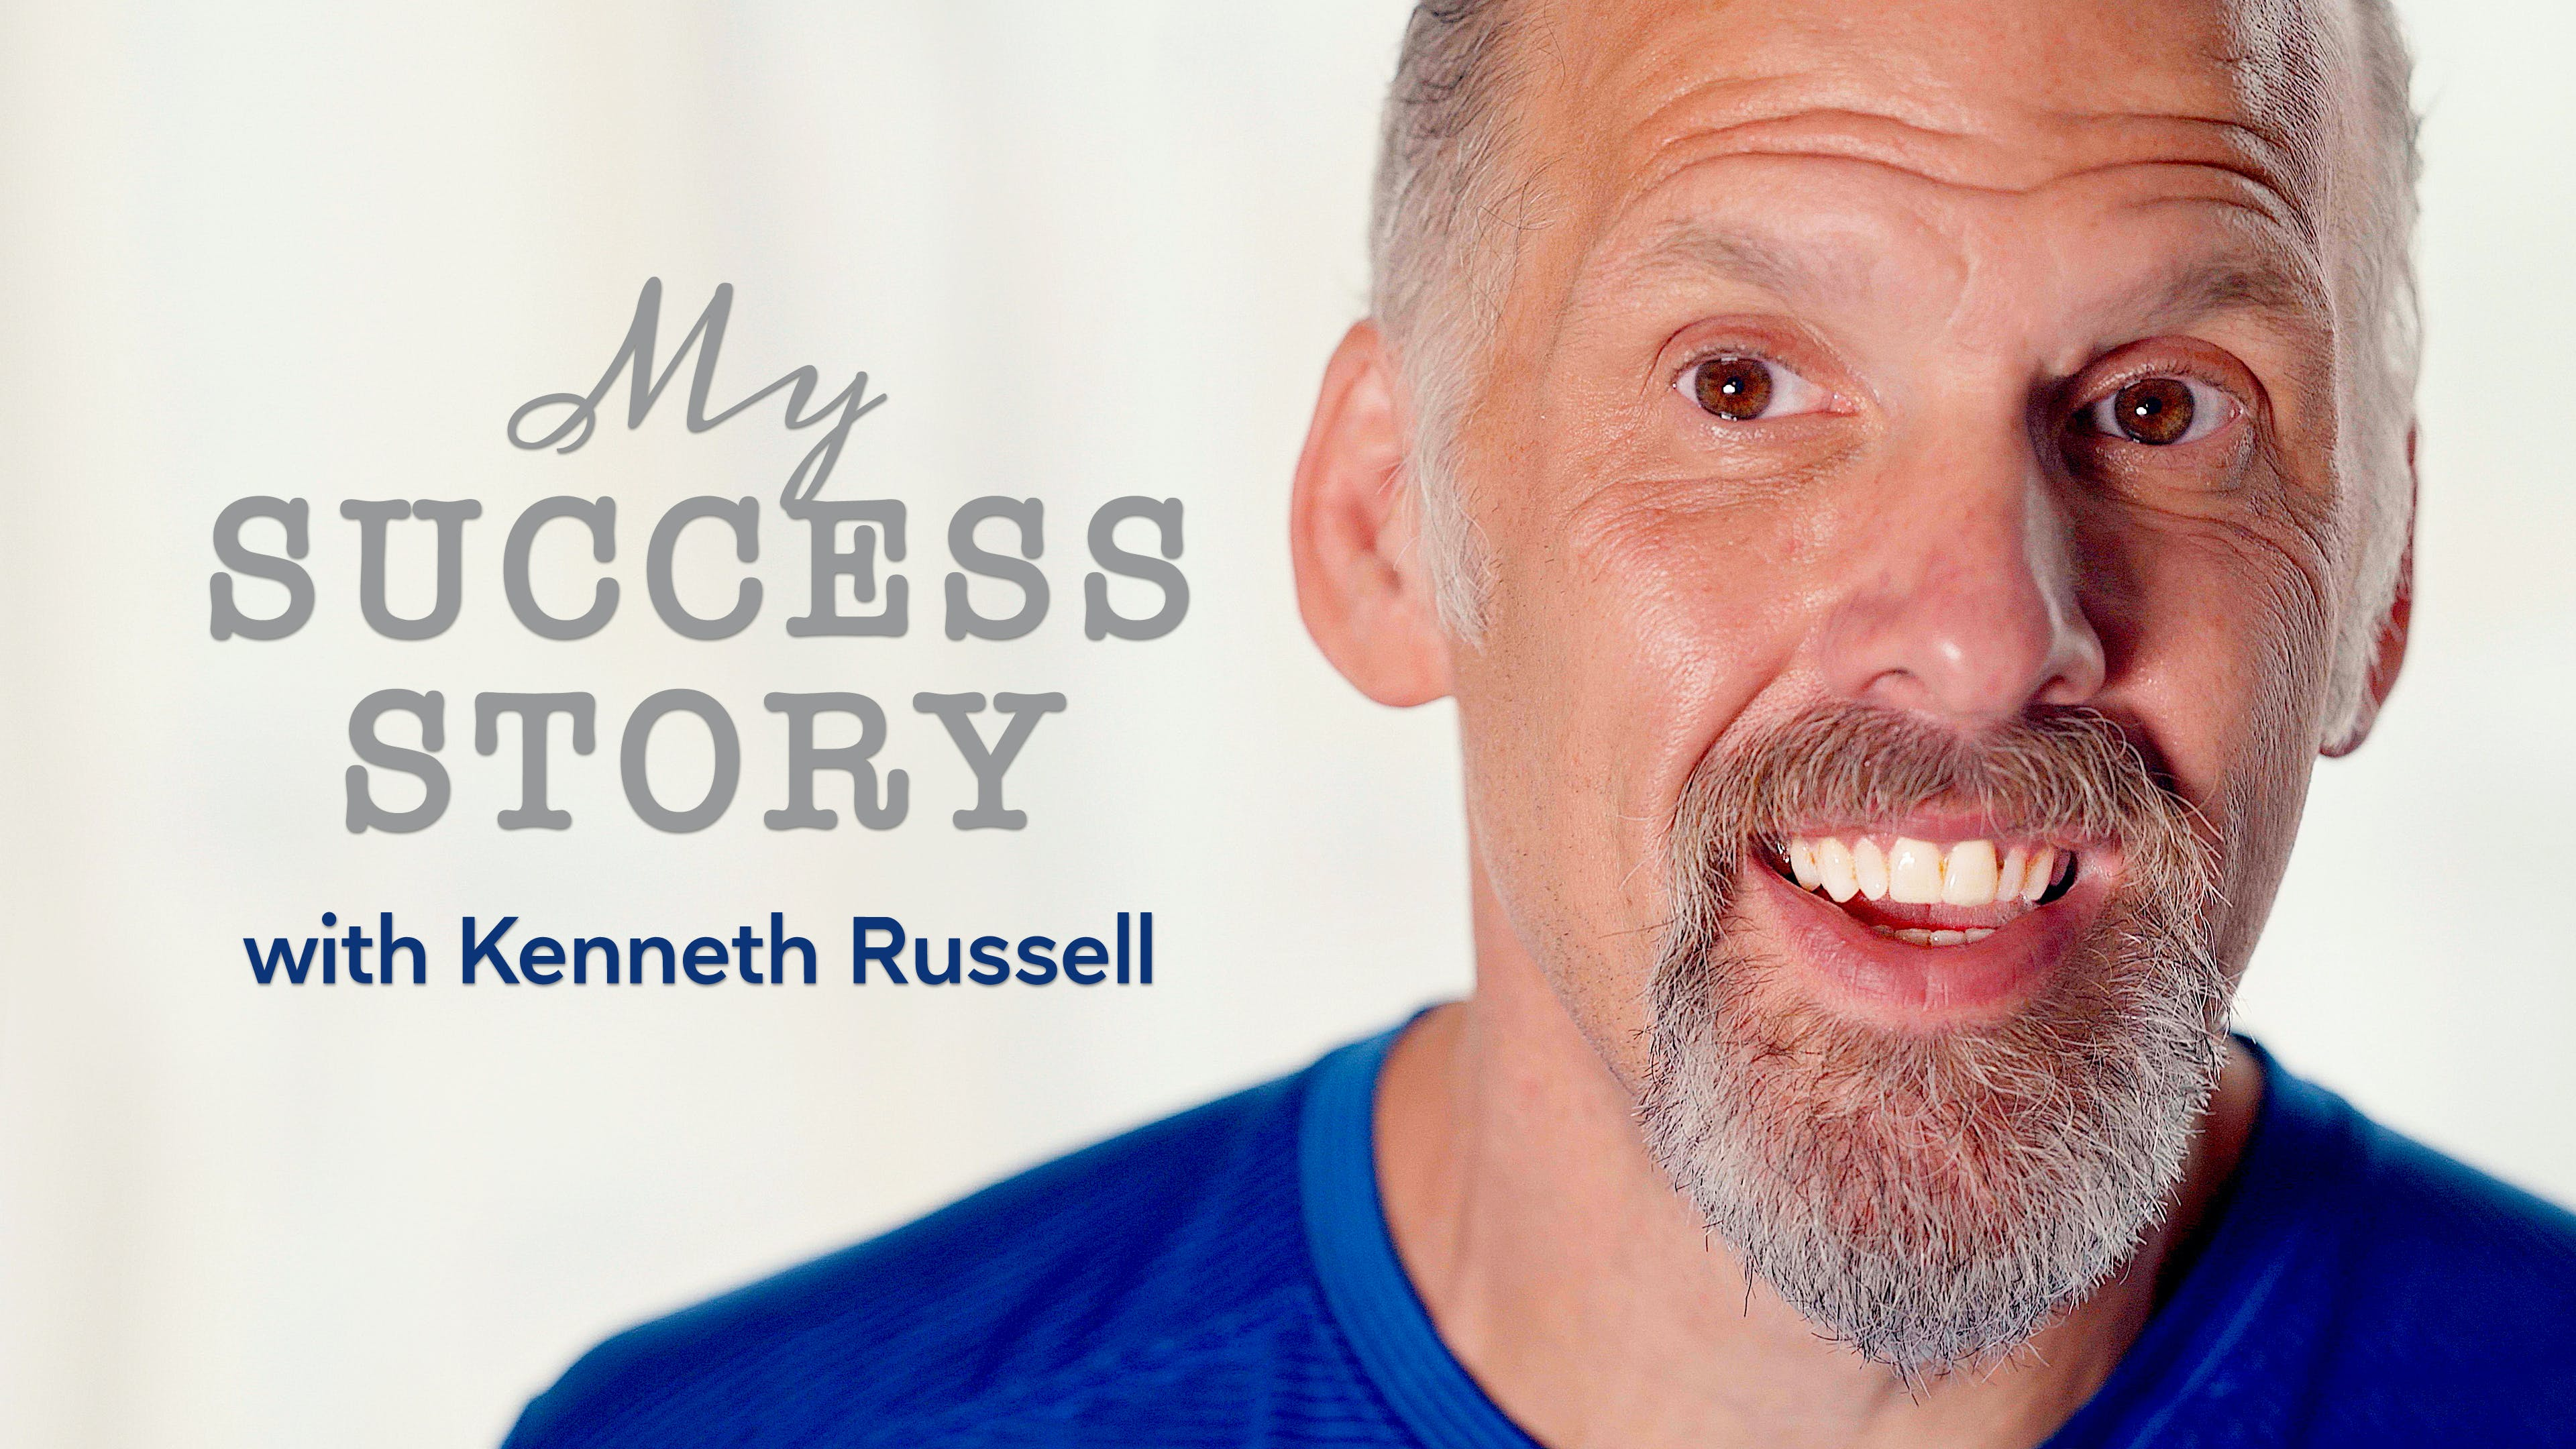 My success story with Kenneth Russell